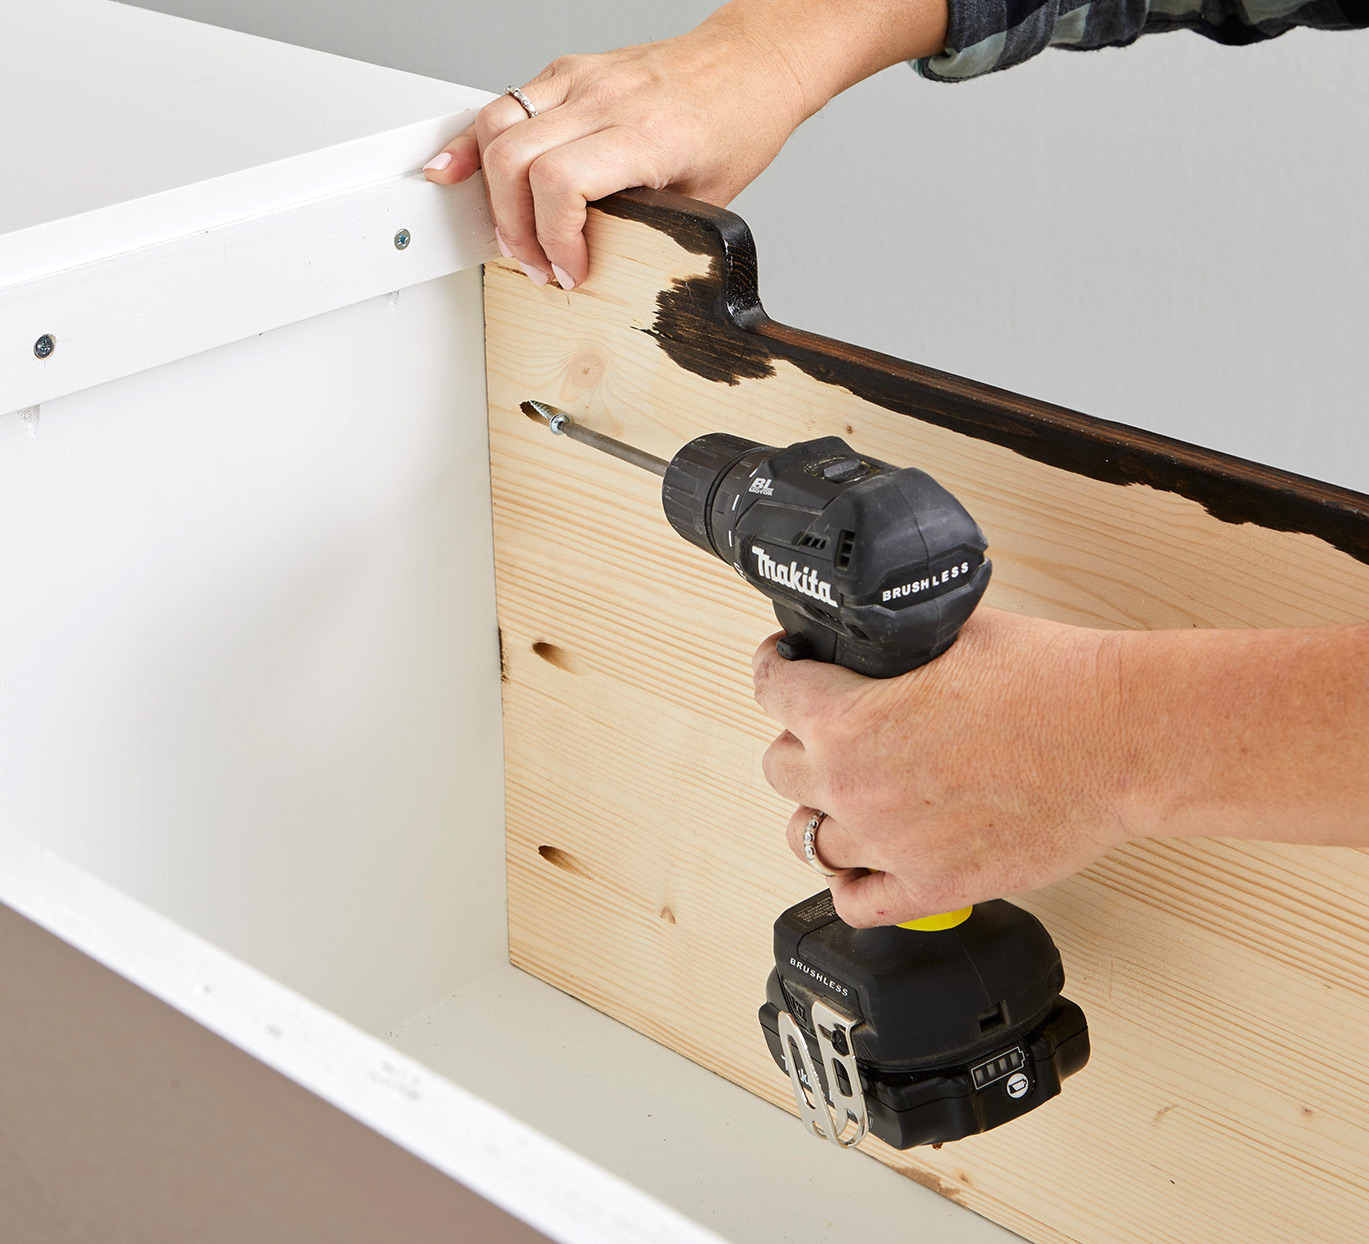 screwing stained wooden board into white board